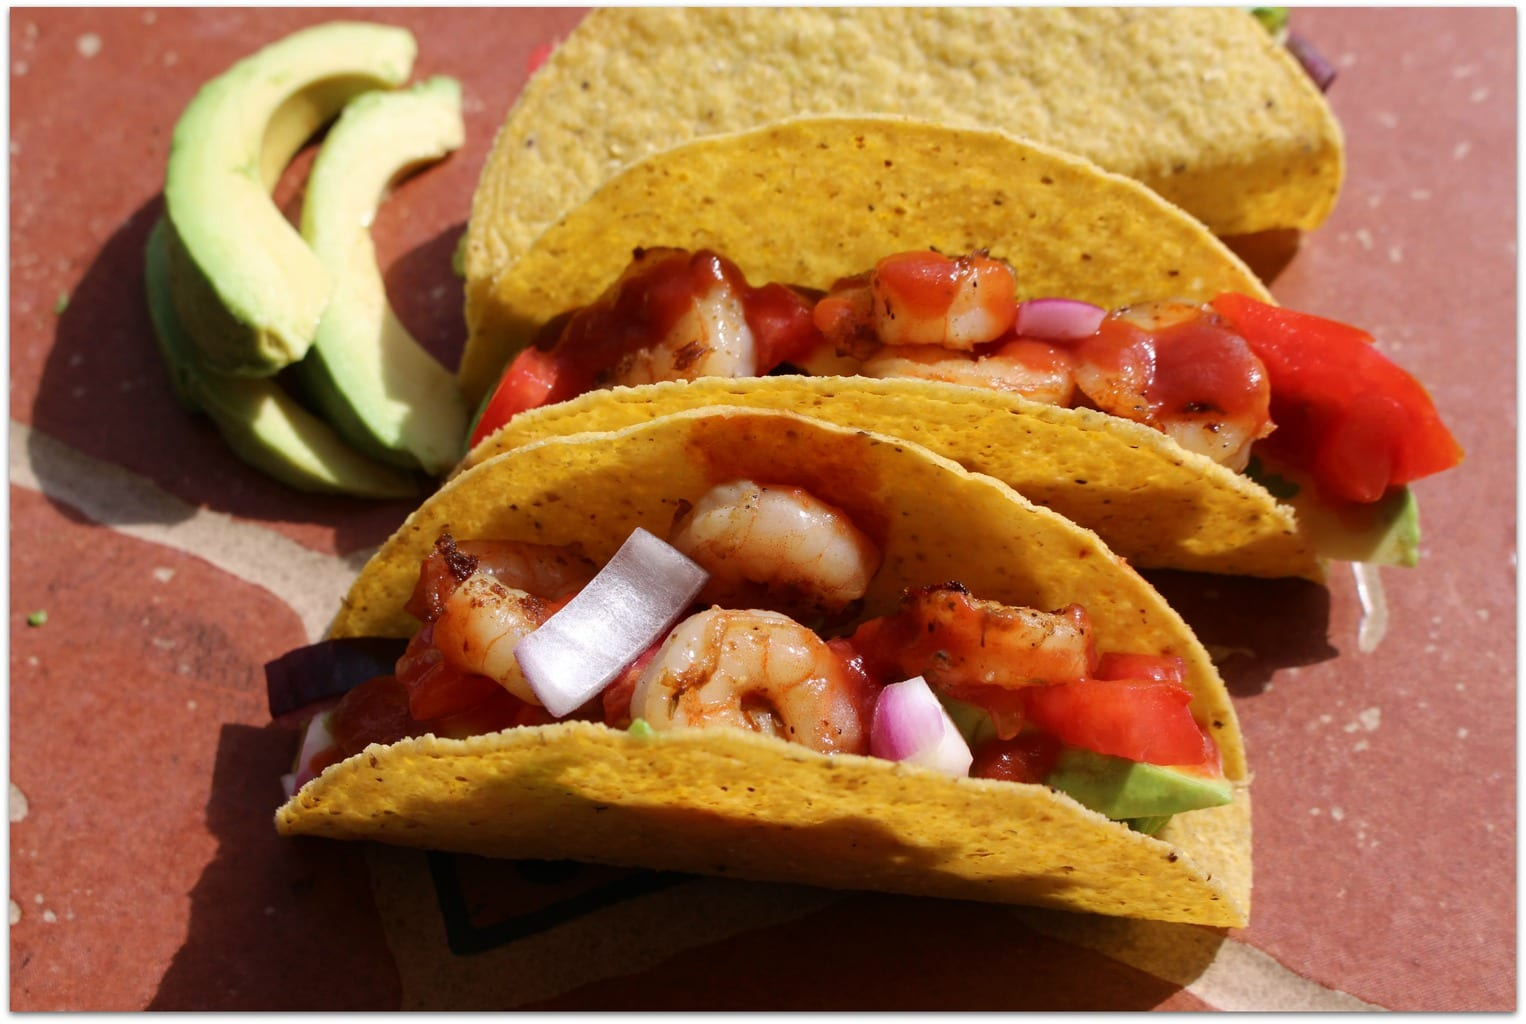 Shrimp tacos are one of my favorite foods. My family never tires of Mexican food, and this is such an easy recipe. When you are busy like we are, you need to be able to pull dinner together quickly. This recipe is perfect for a weeknight meal or a big game celebration!